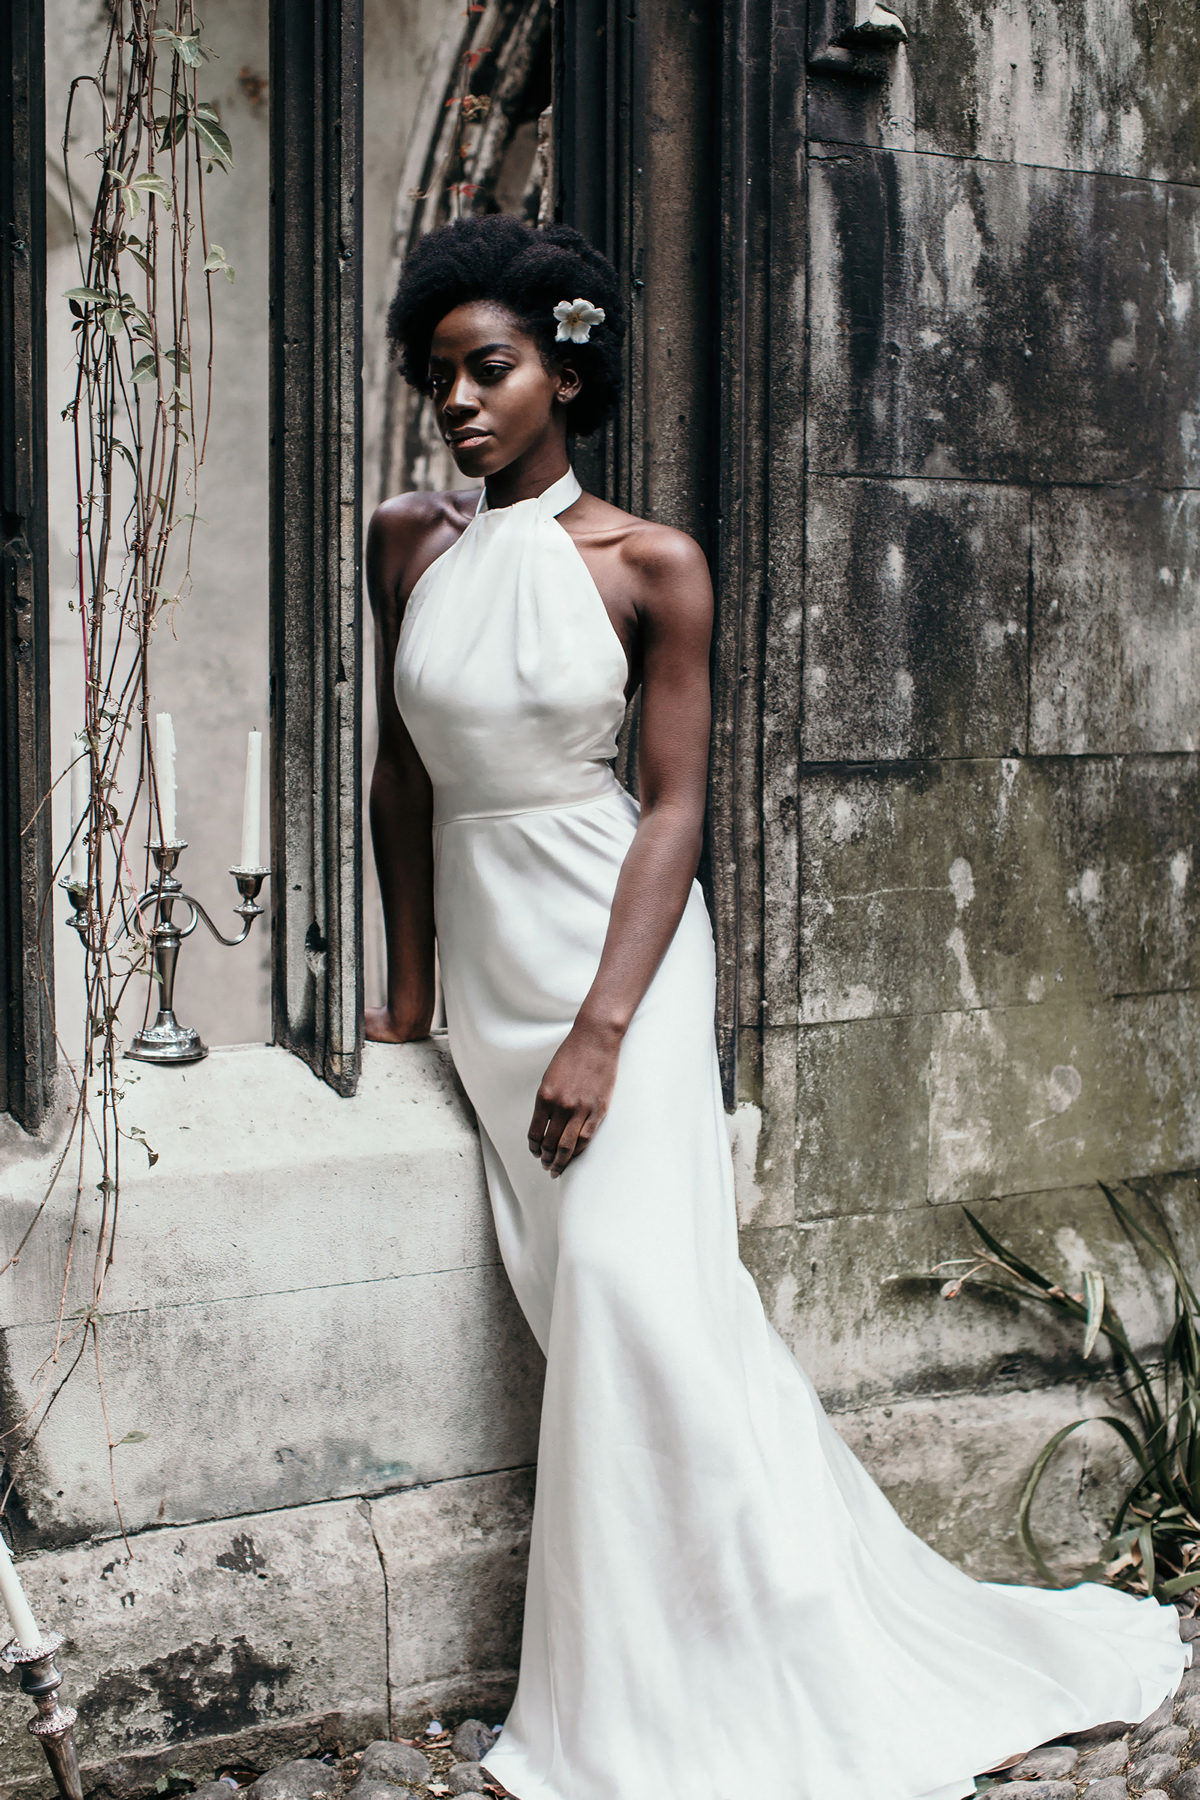 c1c15f83b3f Sanyukta Shrestha Entwined Love Chapter ethical sustainable and eco  friendly wedding dresses - Brand New Ethical